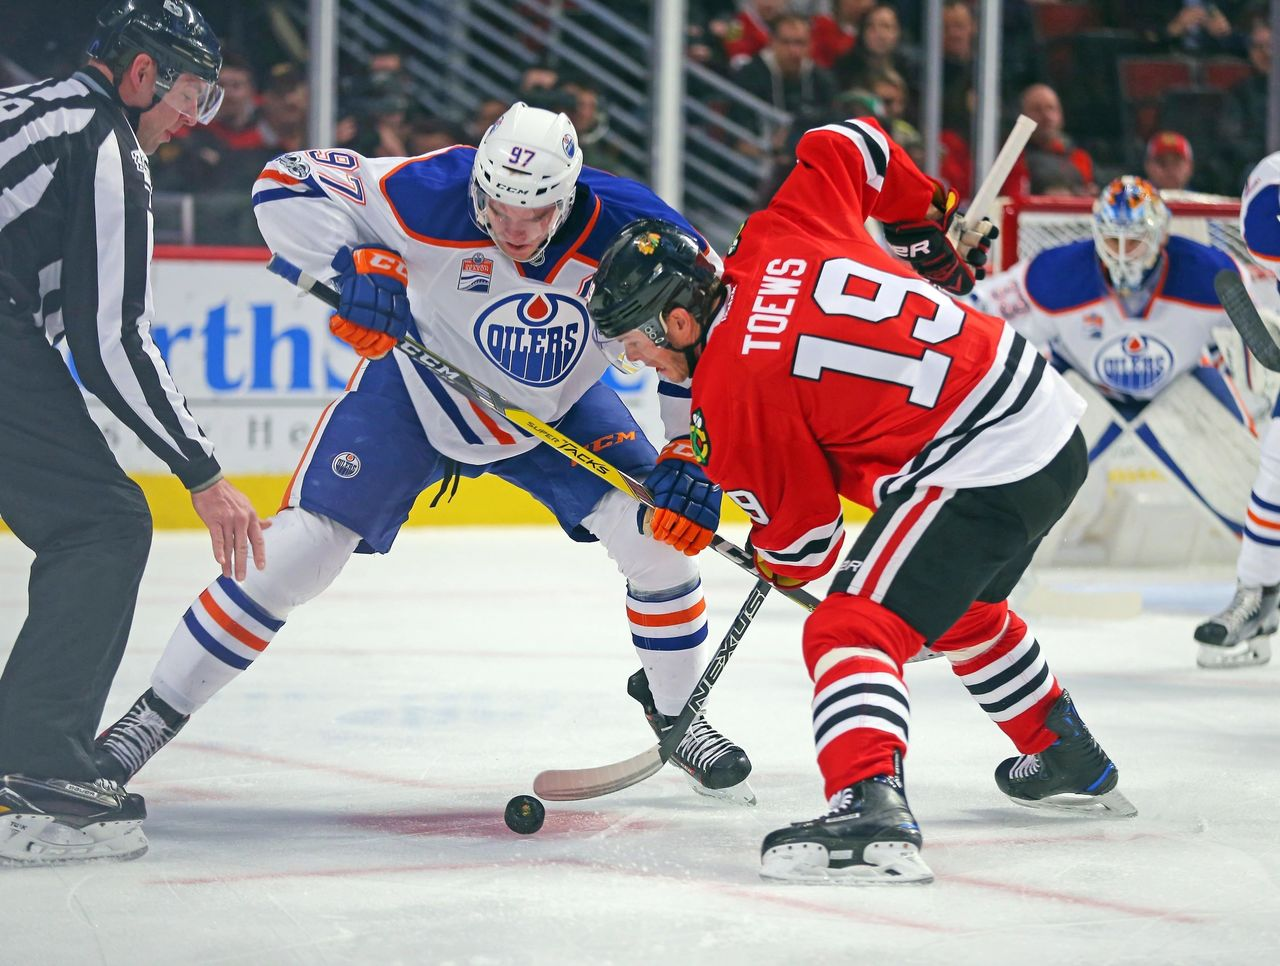 Cropped 2017 02 19t011117z 1375328388 nocid rtrmadp 3 nhl edmonton oilers at chicago blackhawks